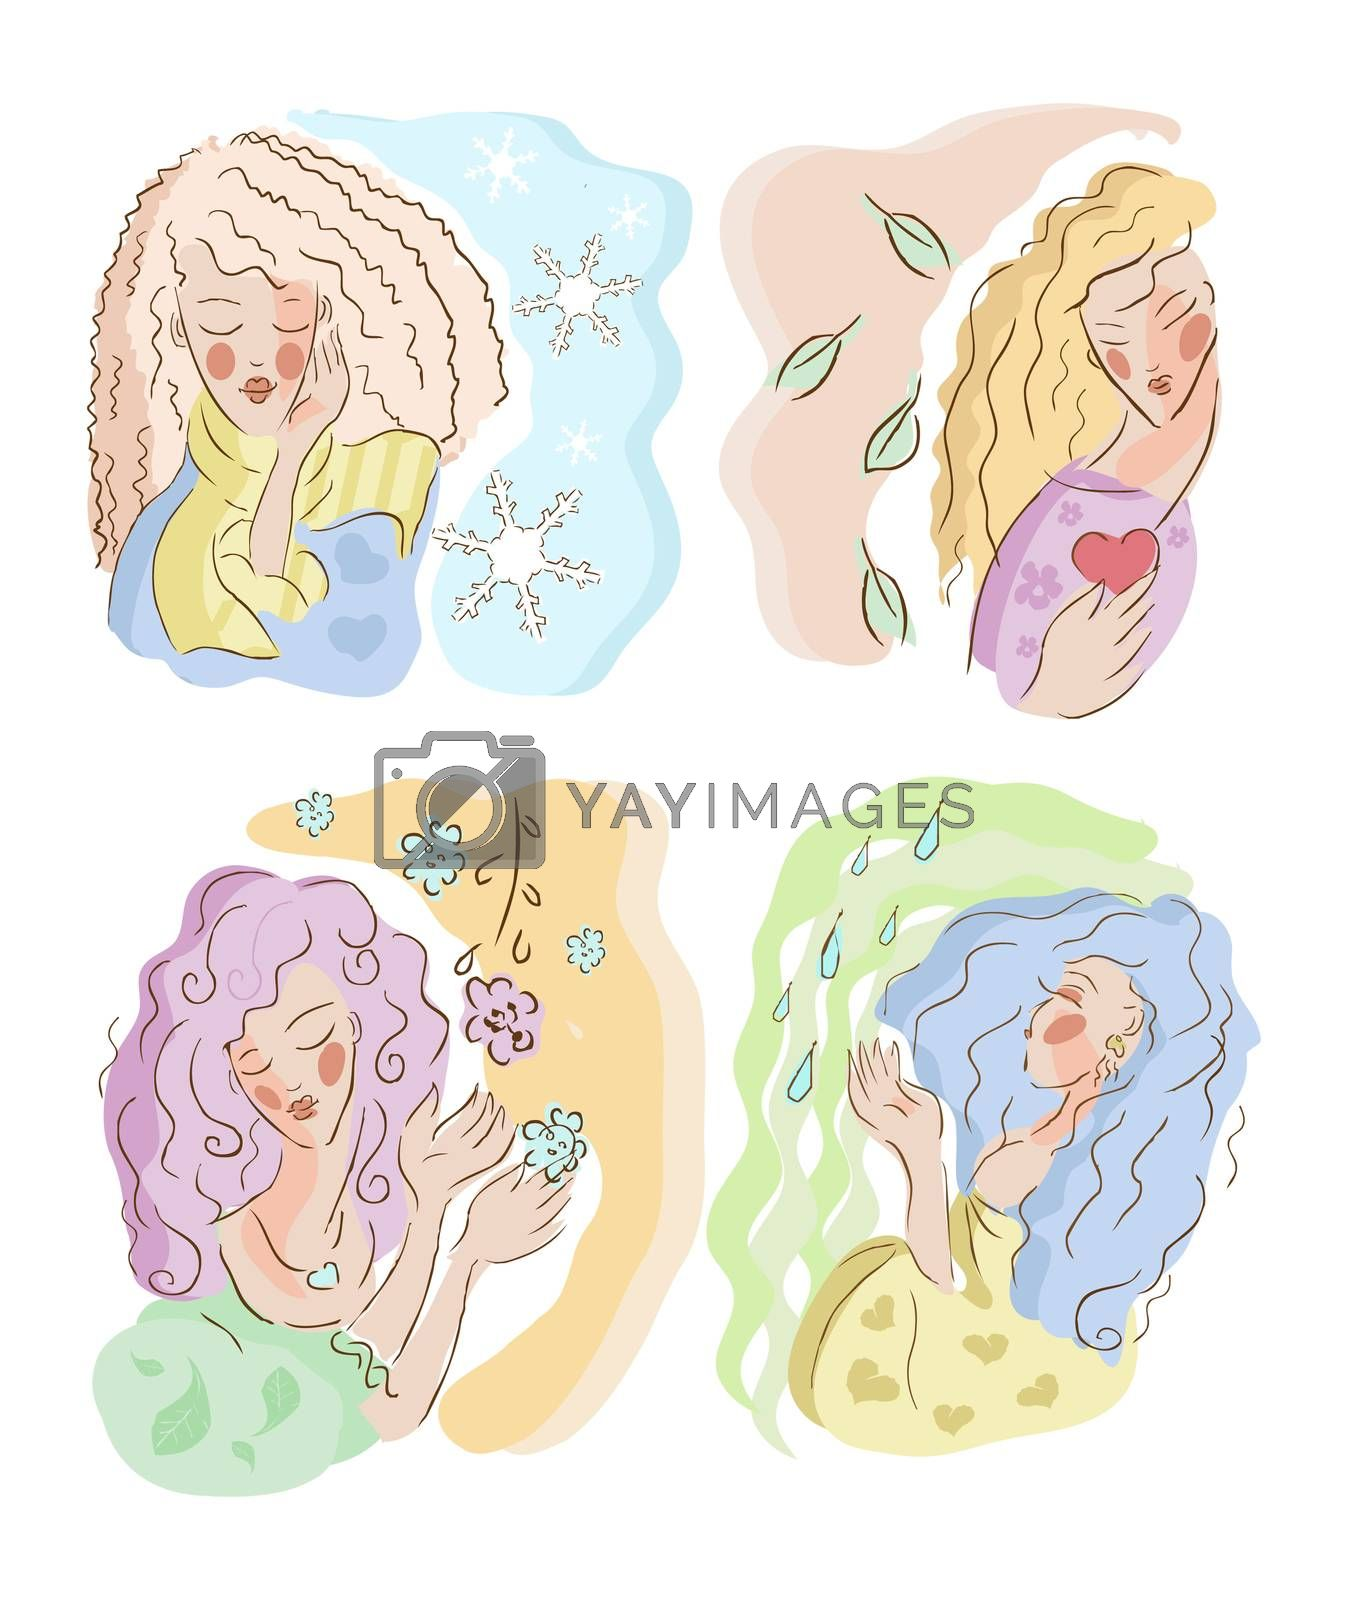 woman take care season white background isolated winter, Spring, summer, autumn, winter